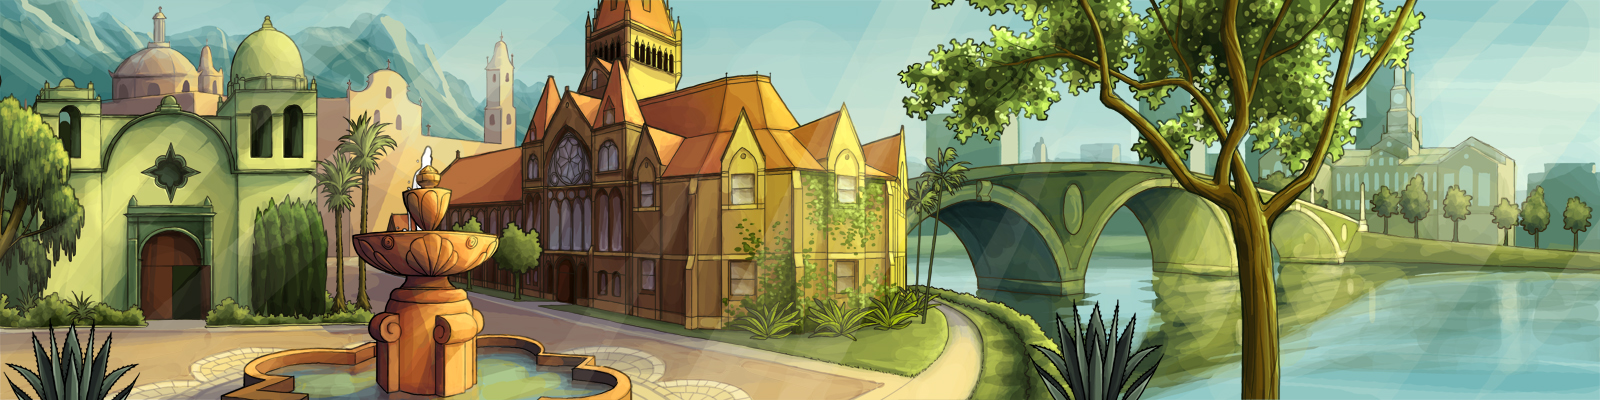 University by tamiart